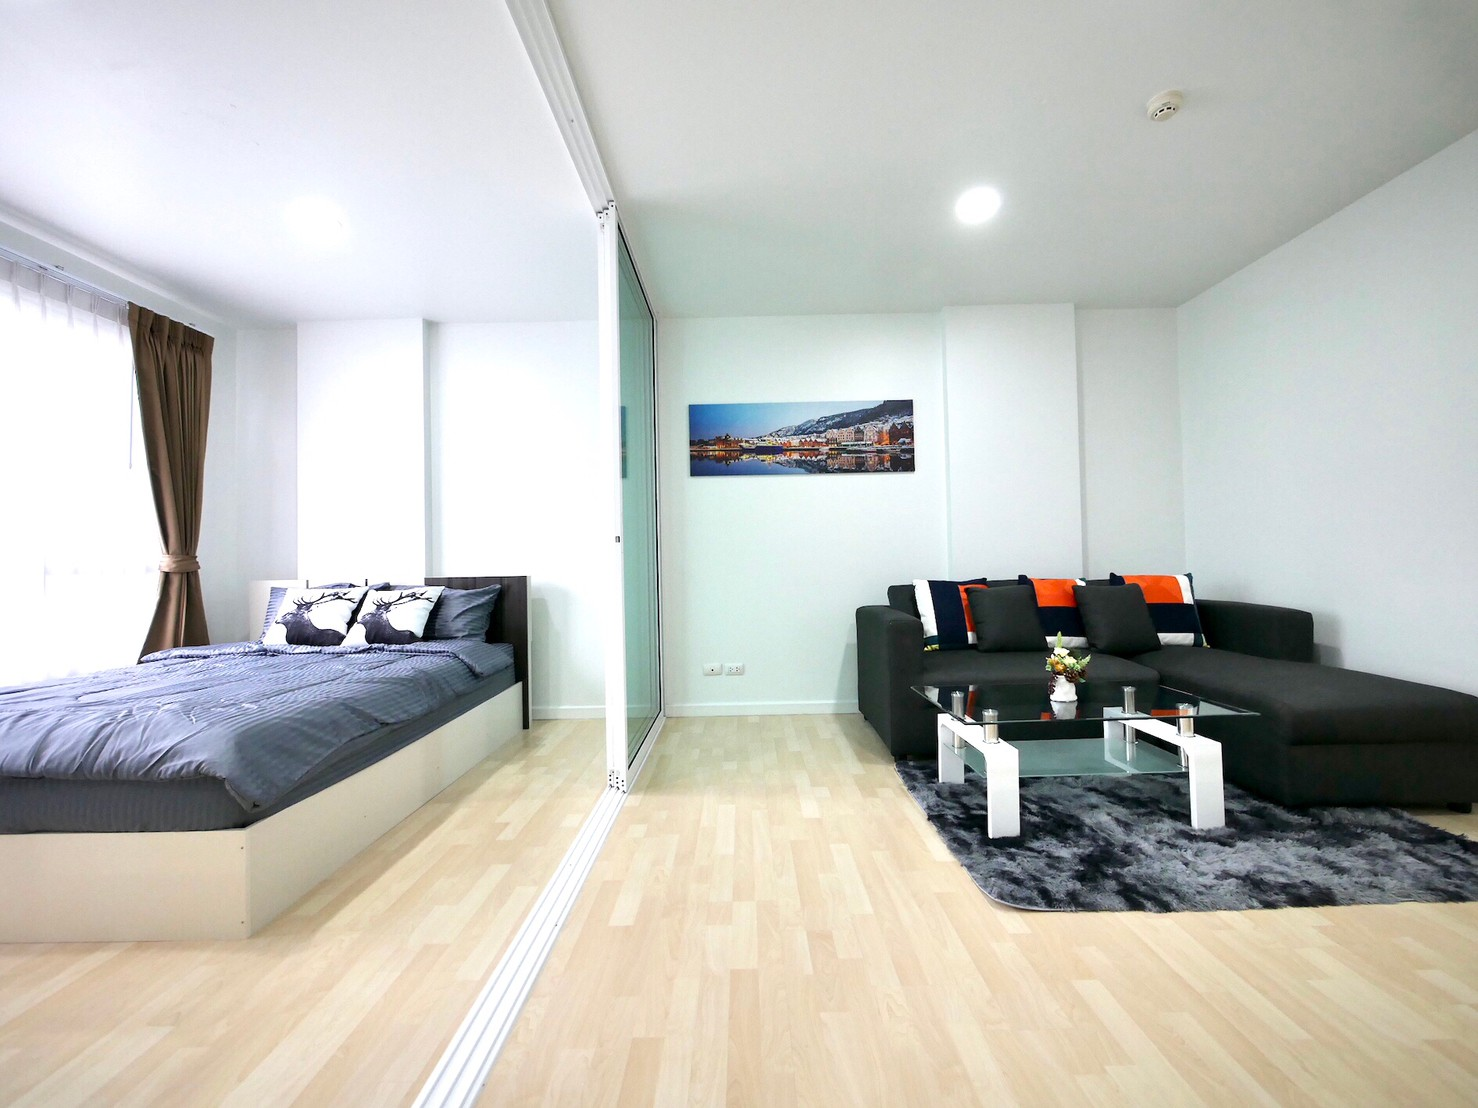 For SaleCondoRamkhamhaeng Nida, Seri Thai : Nice room, cheap price !! For Sale D condo Ramkhamhaeng 64, Fully furnished, Ready to move in, Cheapest in project